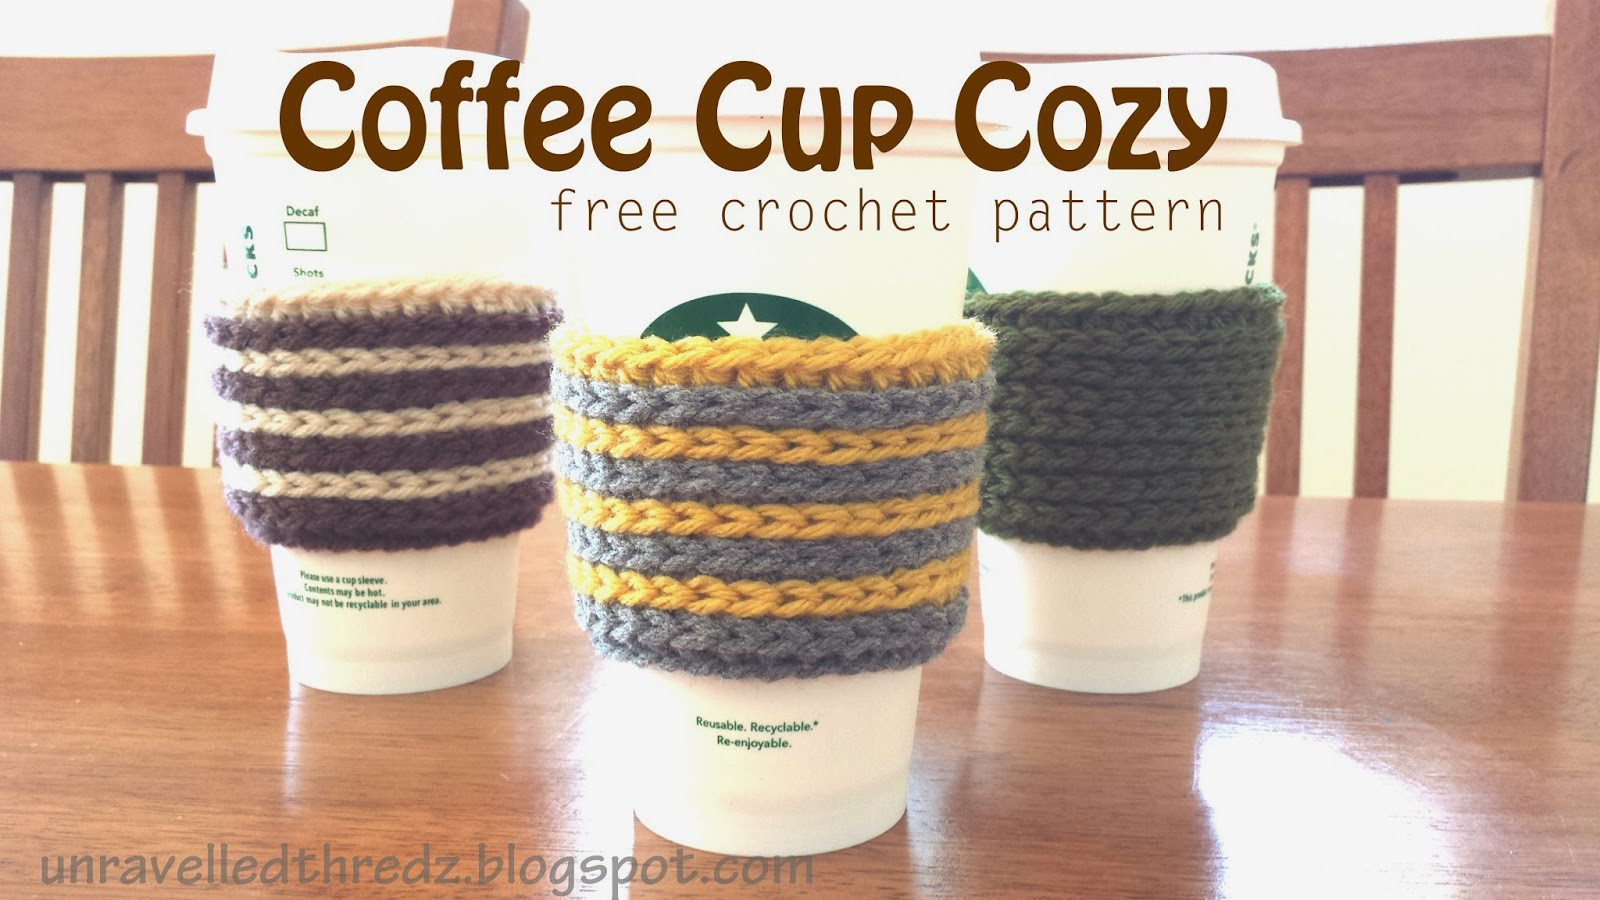 Crochet Coffee Cup Cozy Inspirational Crochet Class Beginning Crochet Sparkleez Crystles Of Crochet Coffee Cup Cozy New Crochet Tea Cozy Coffee Cup Sleeve Coffee Sleeve Mug Cozy